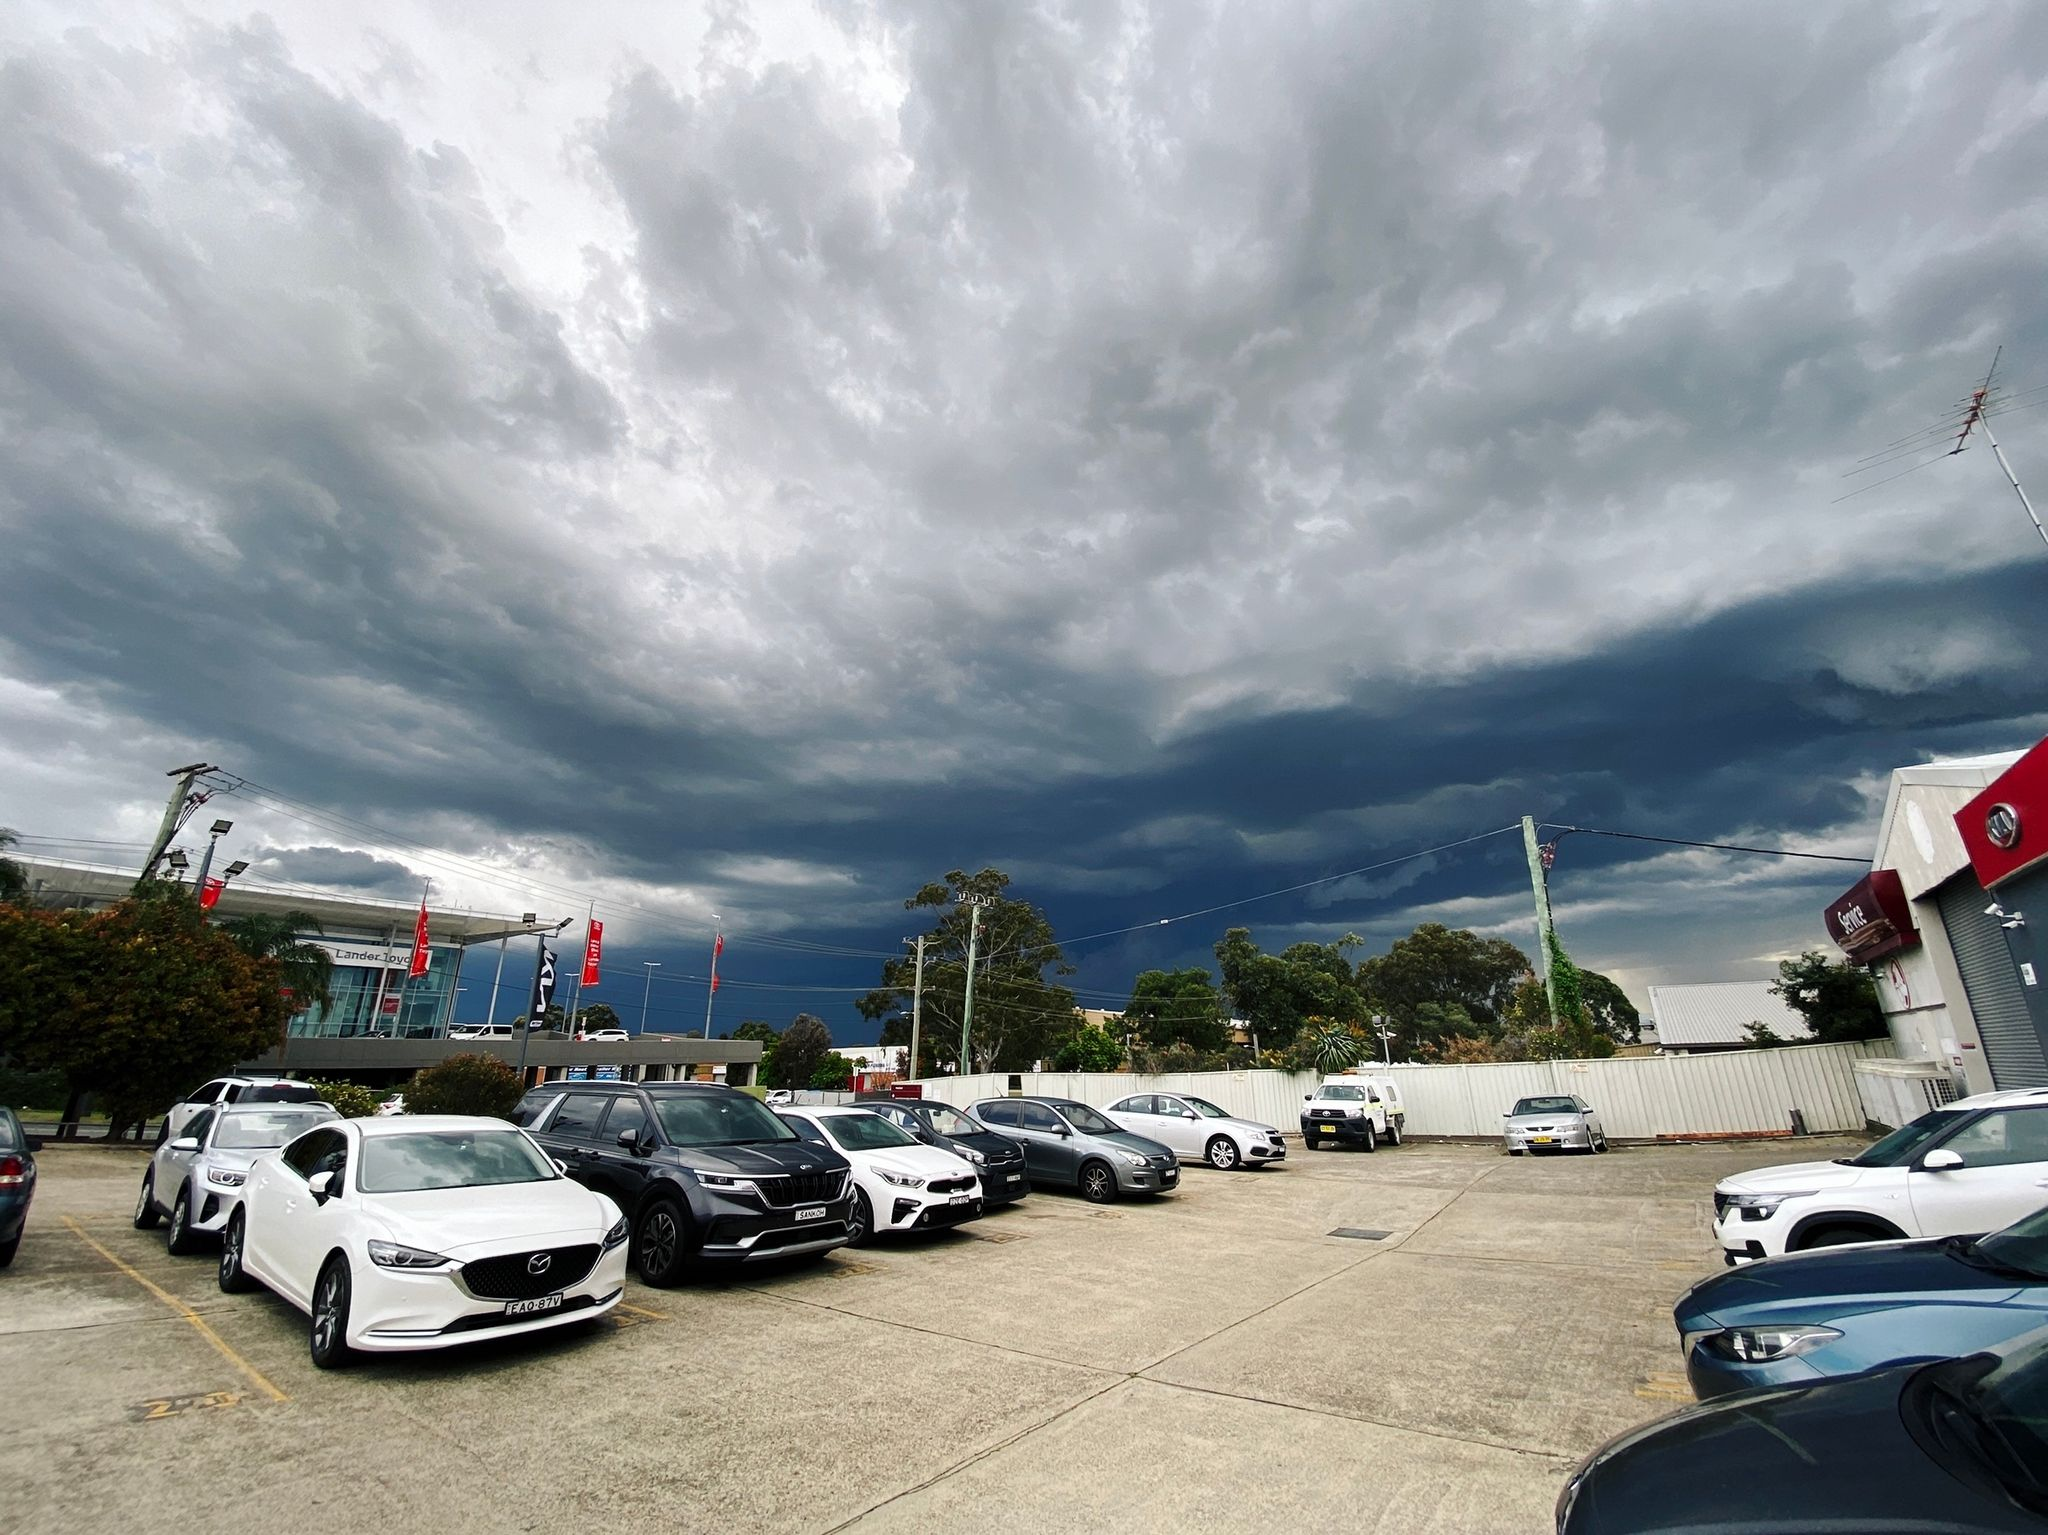 A photo looking out over the parking lot of a car dealership. There's a VERY LARGE, VERY ANGRY bank of extremely dark clouds in the sky.